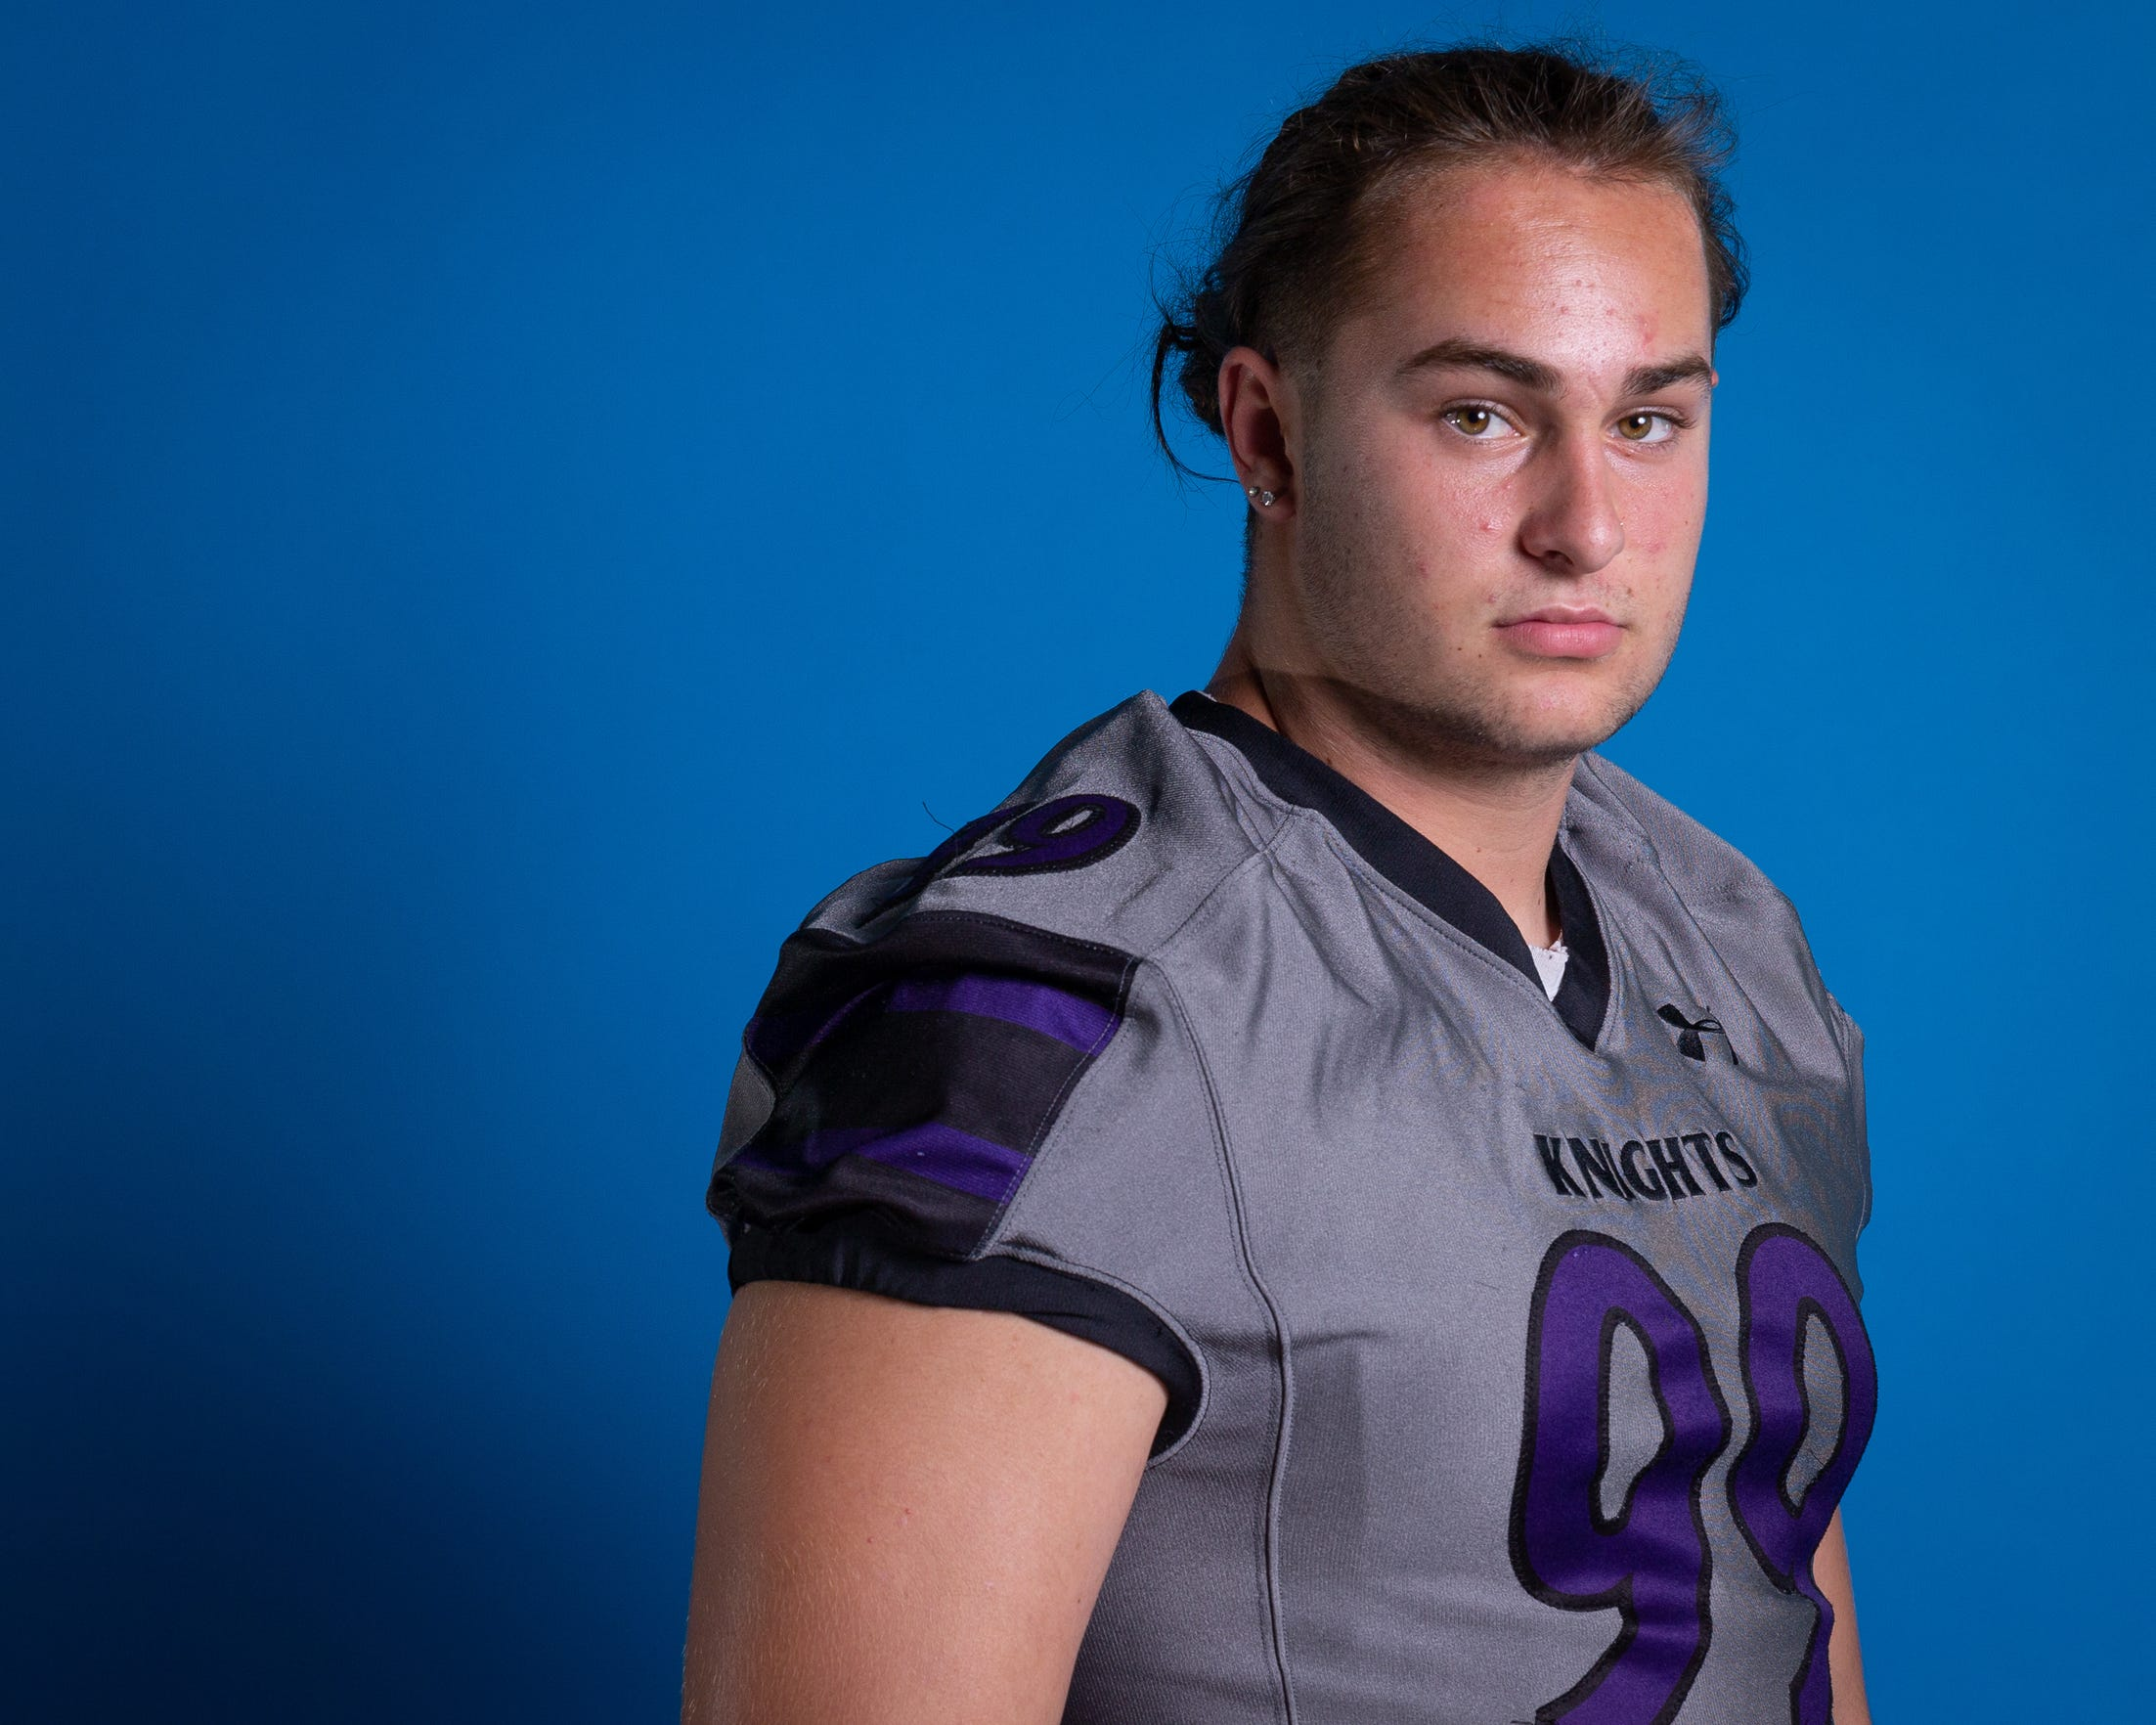 Shadow Hills senior Jake Shipley is committed to play football at Oregon in college.